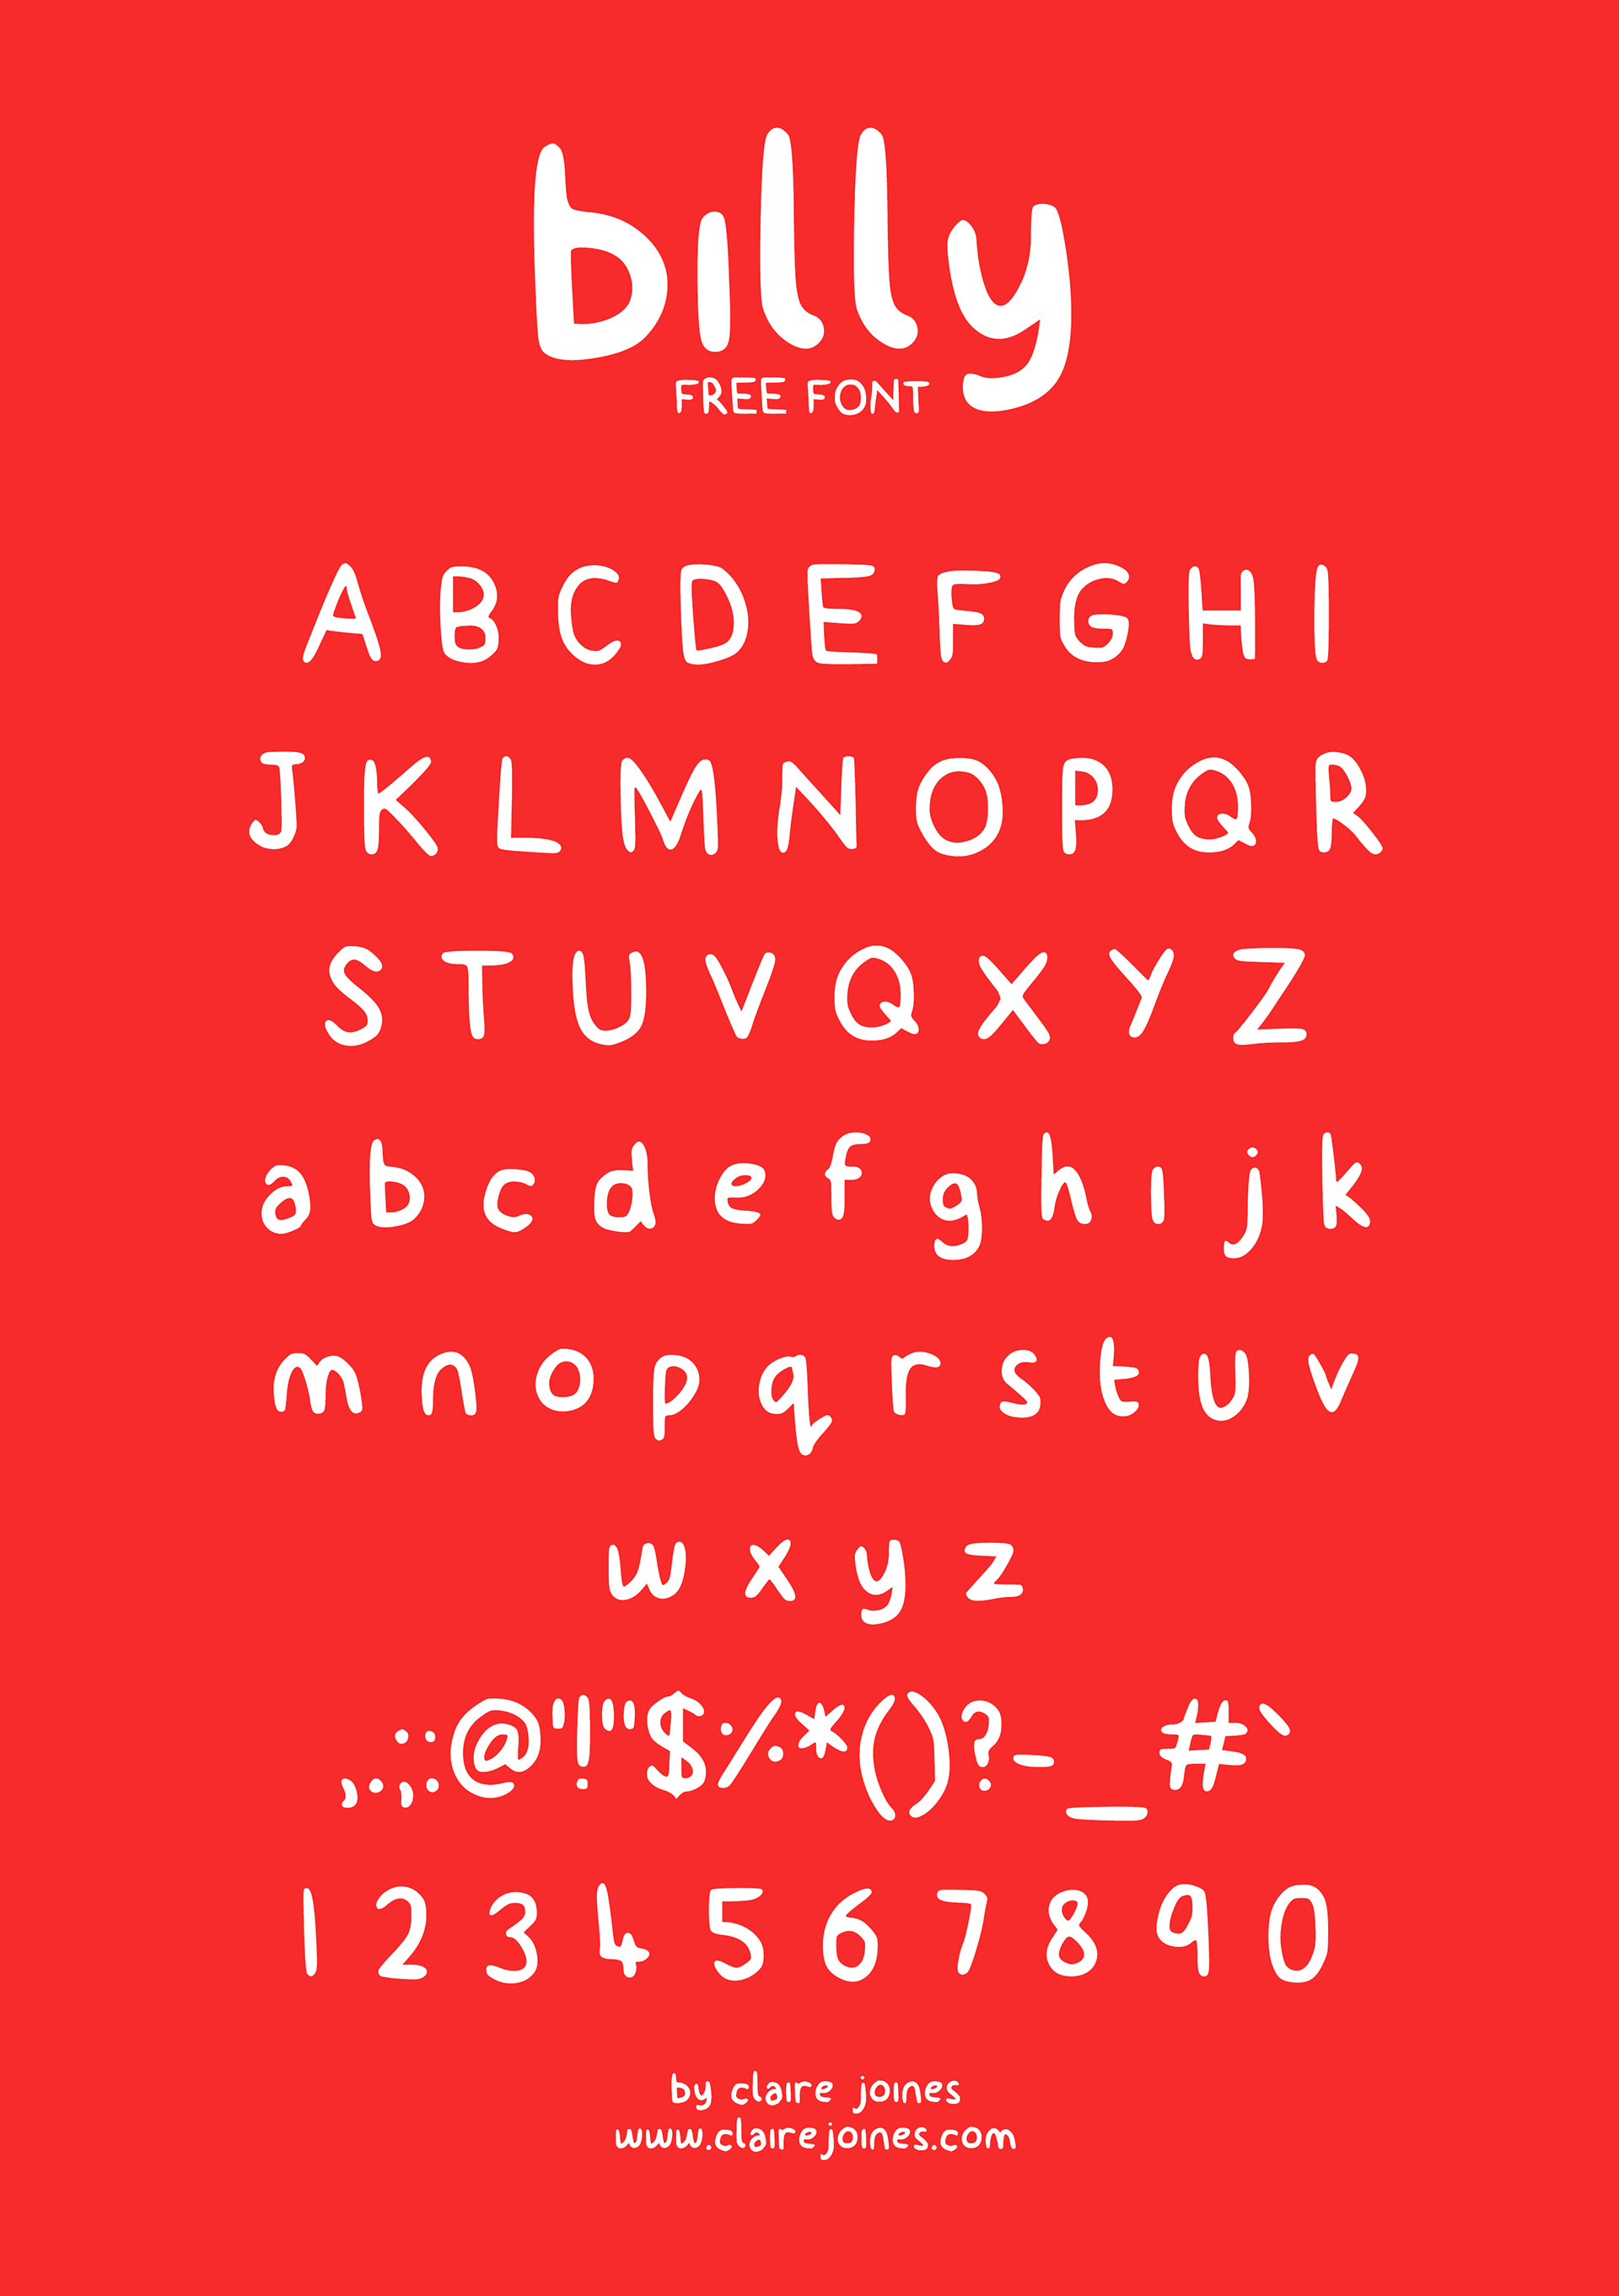 billy Free Font -